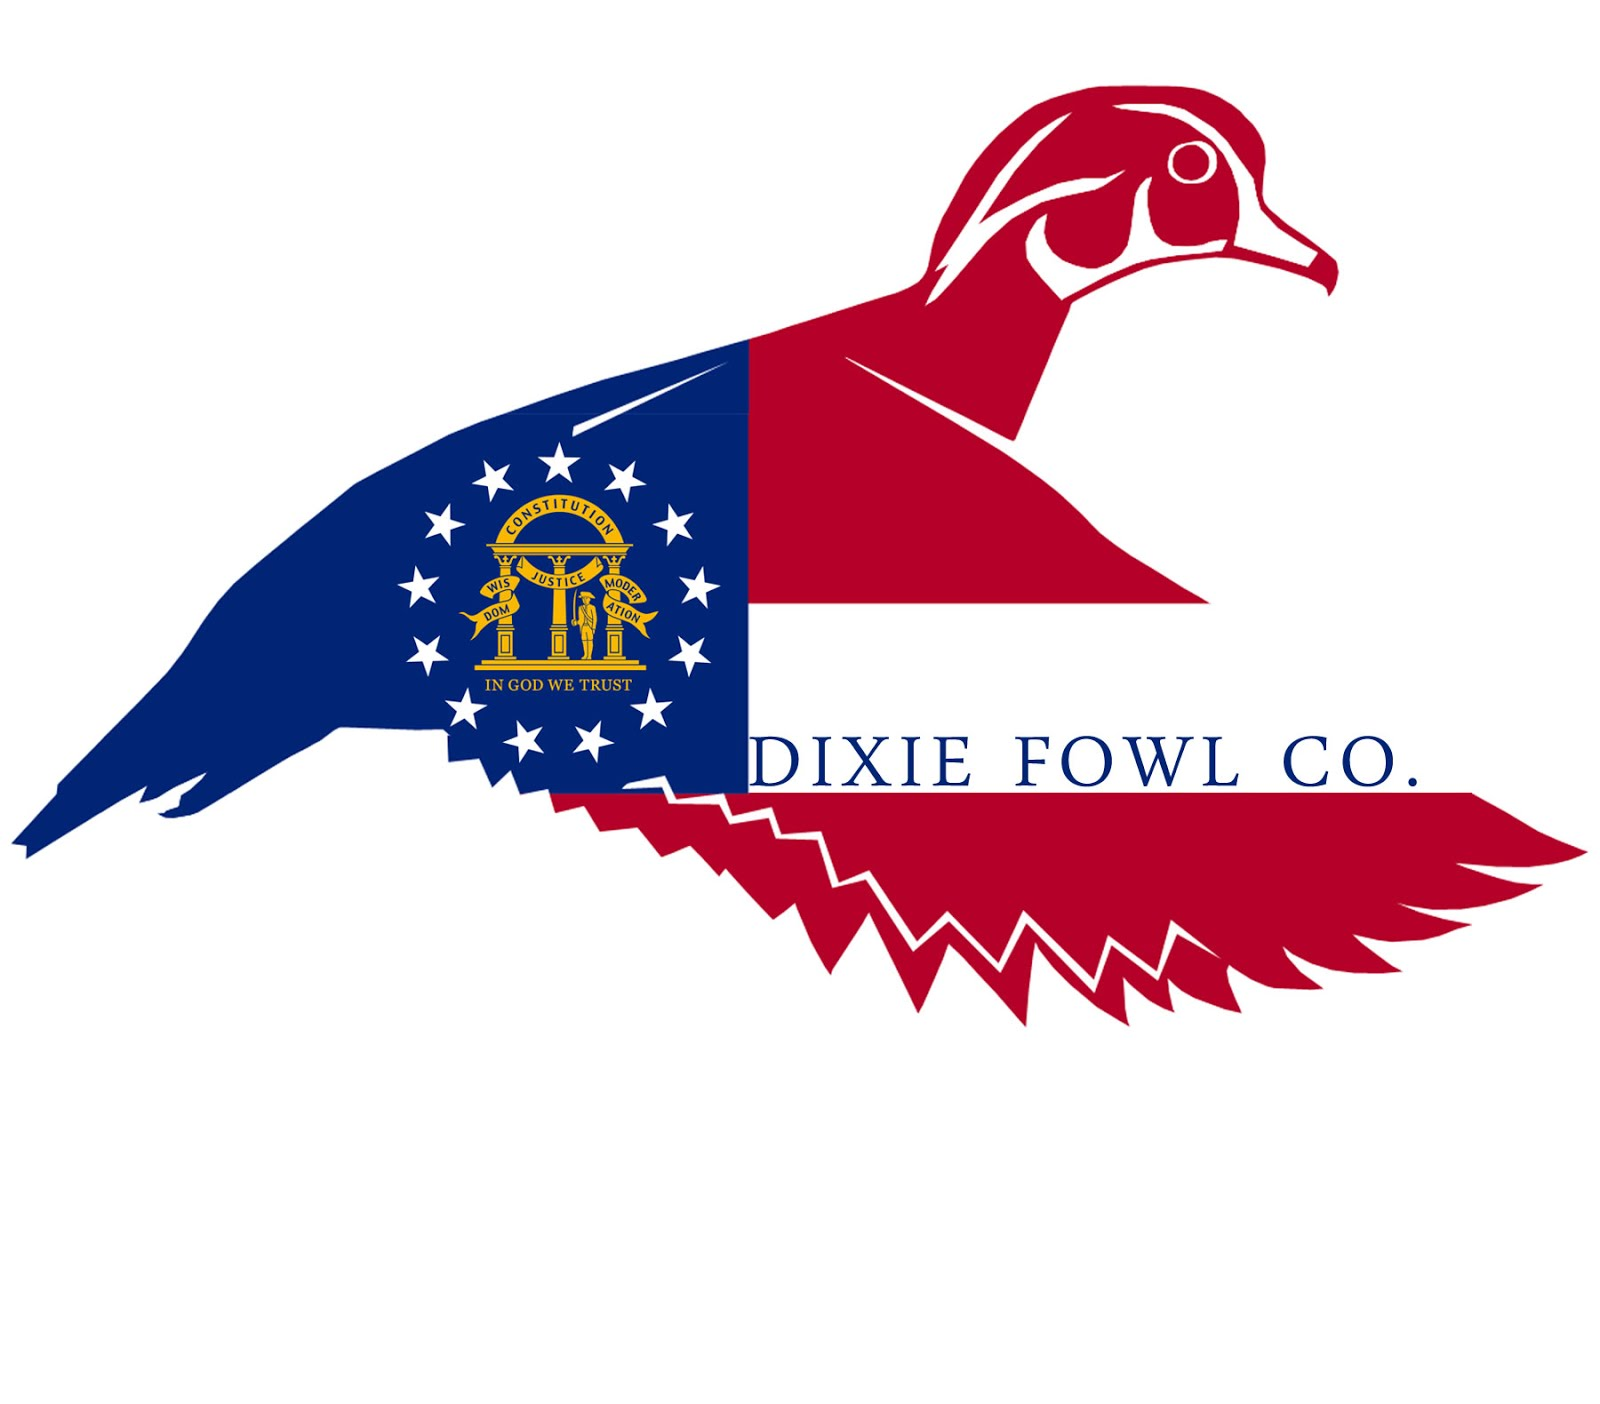 Dixie Fowl Clothing